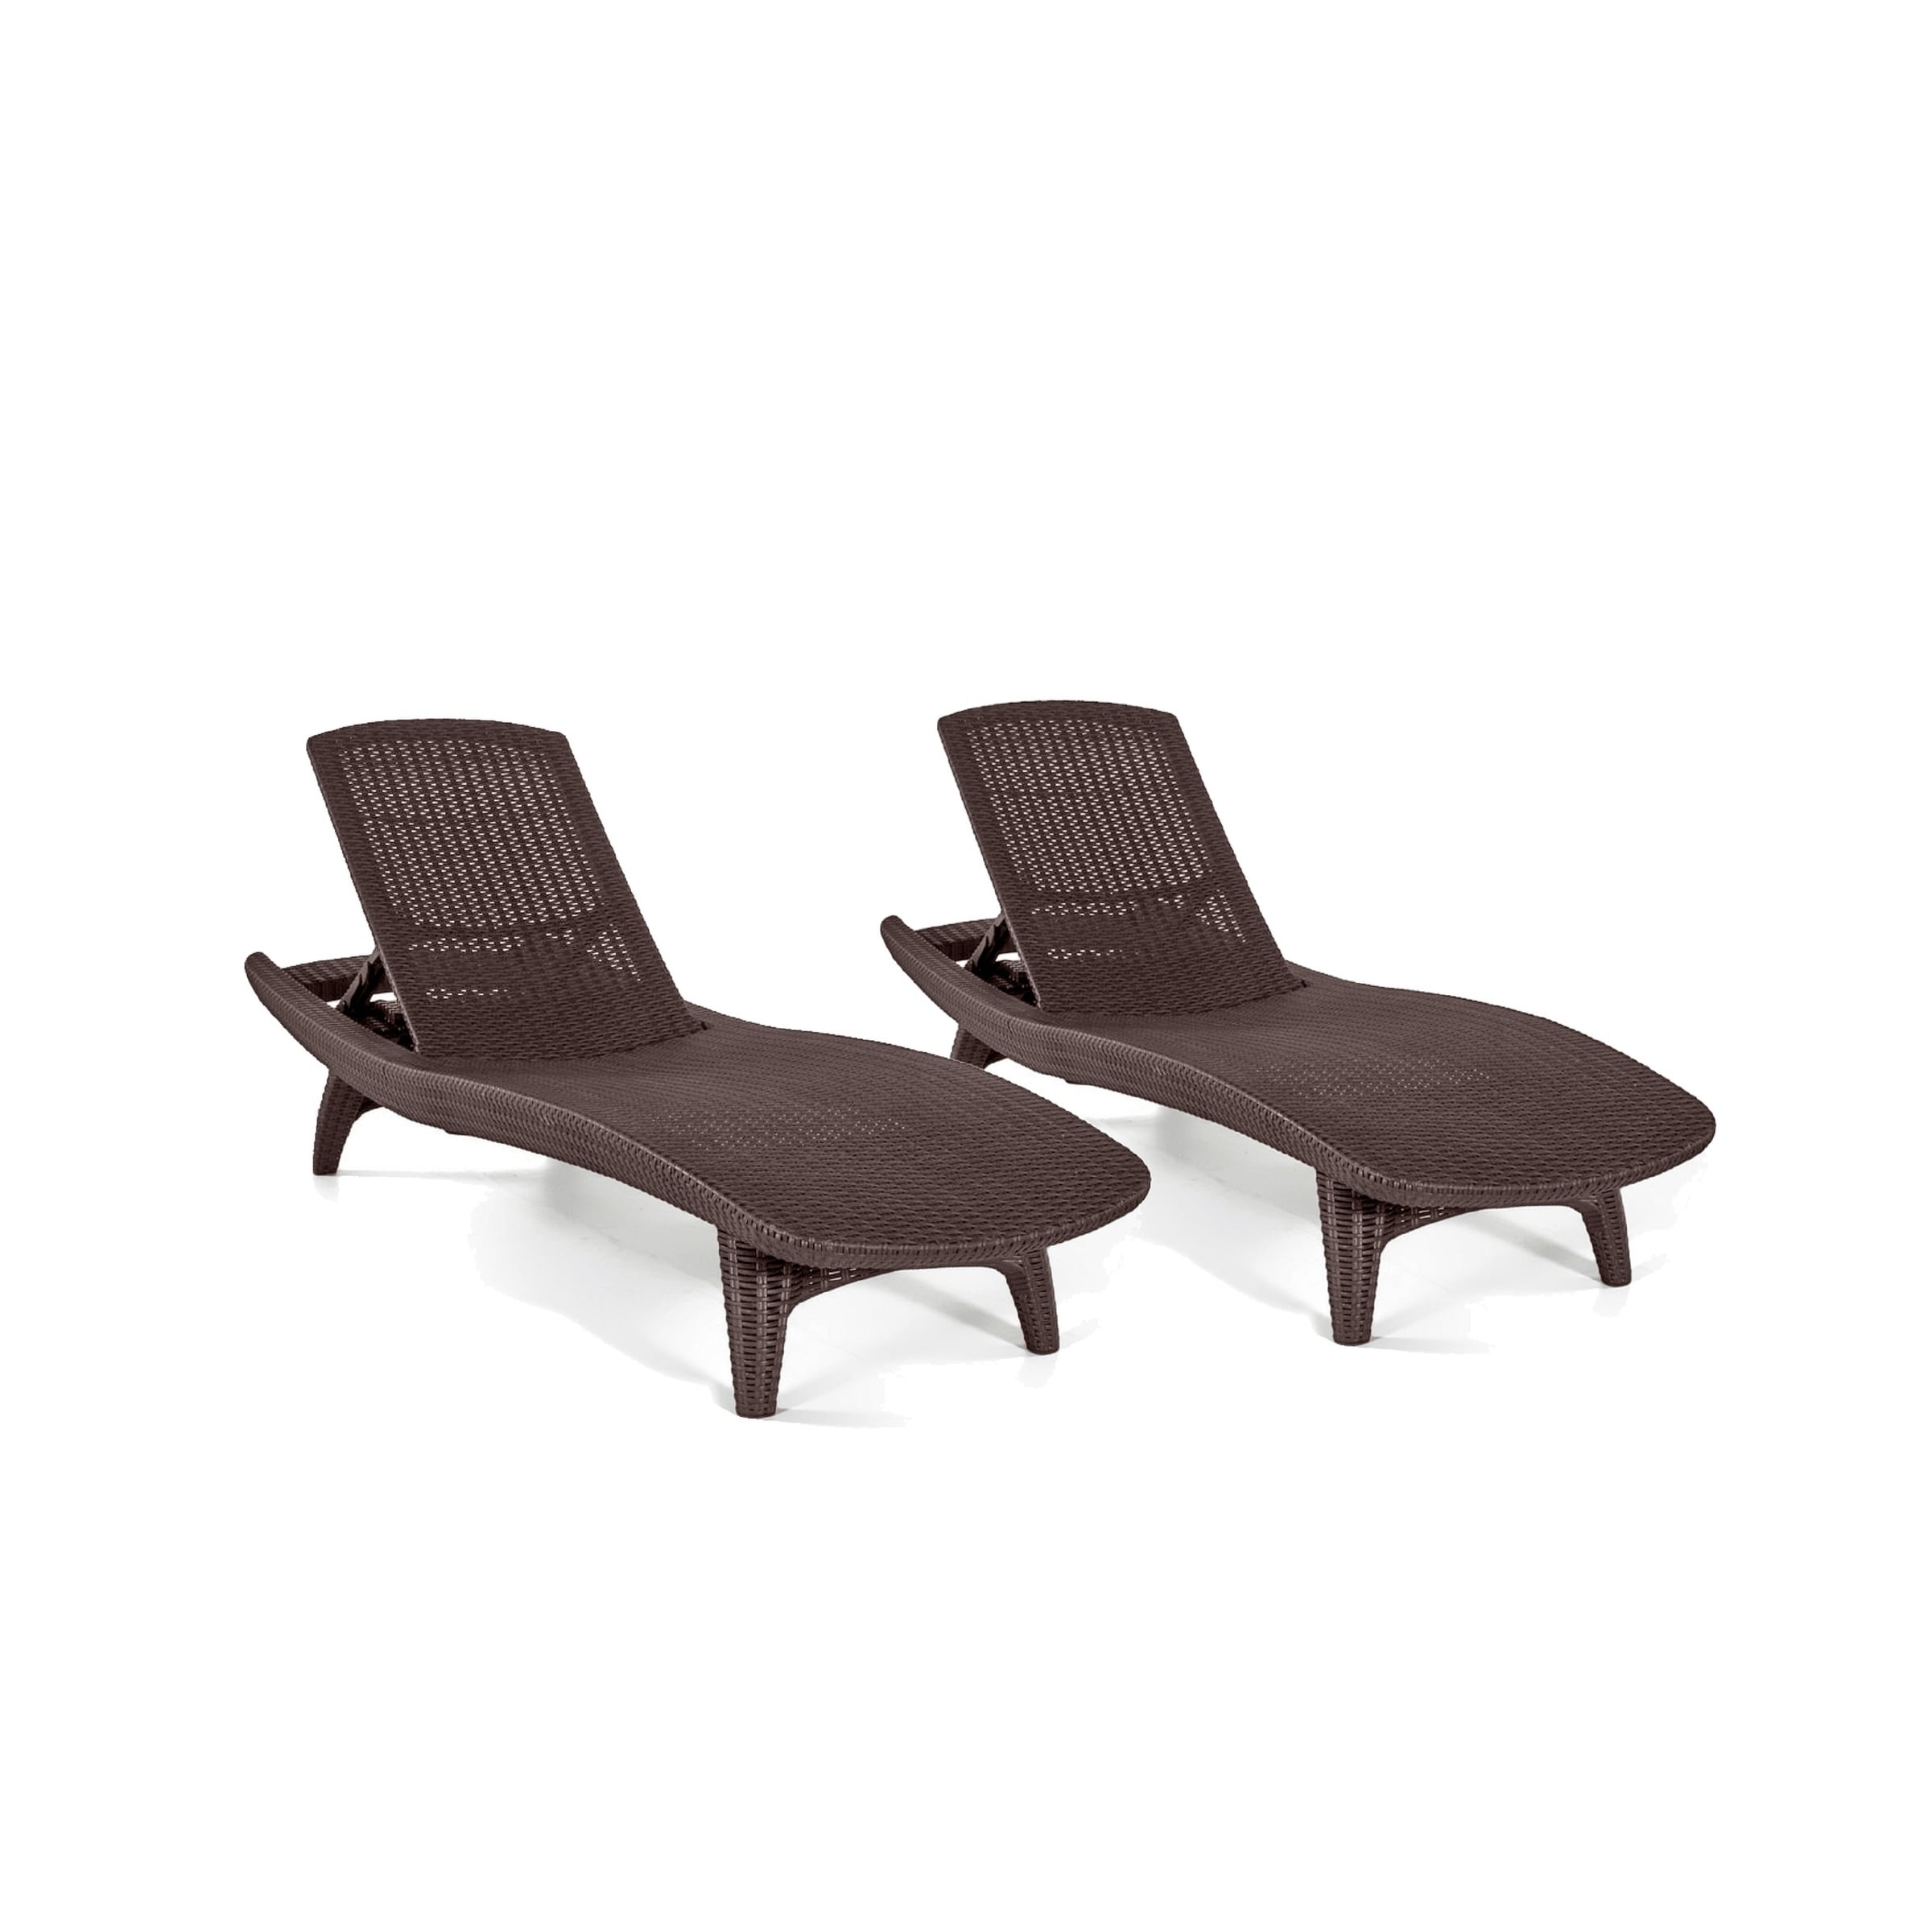 Keter Pacific All Weather Outdoor Patio Brown Chaise Lounge (Set Regarding Well Liked Keter Chaise Lounge Chairs (Gallery 11 of 15)